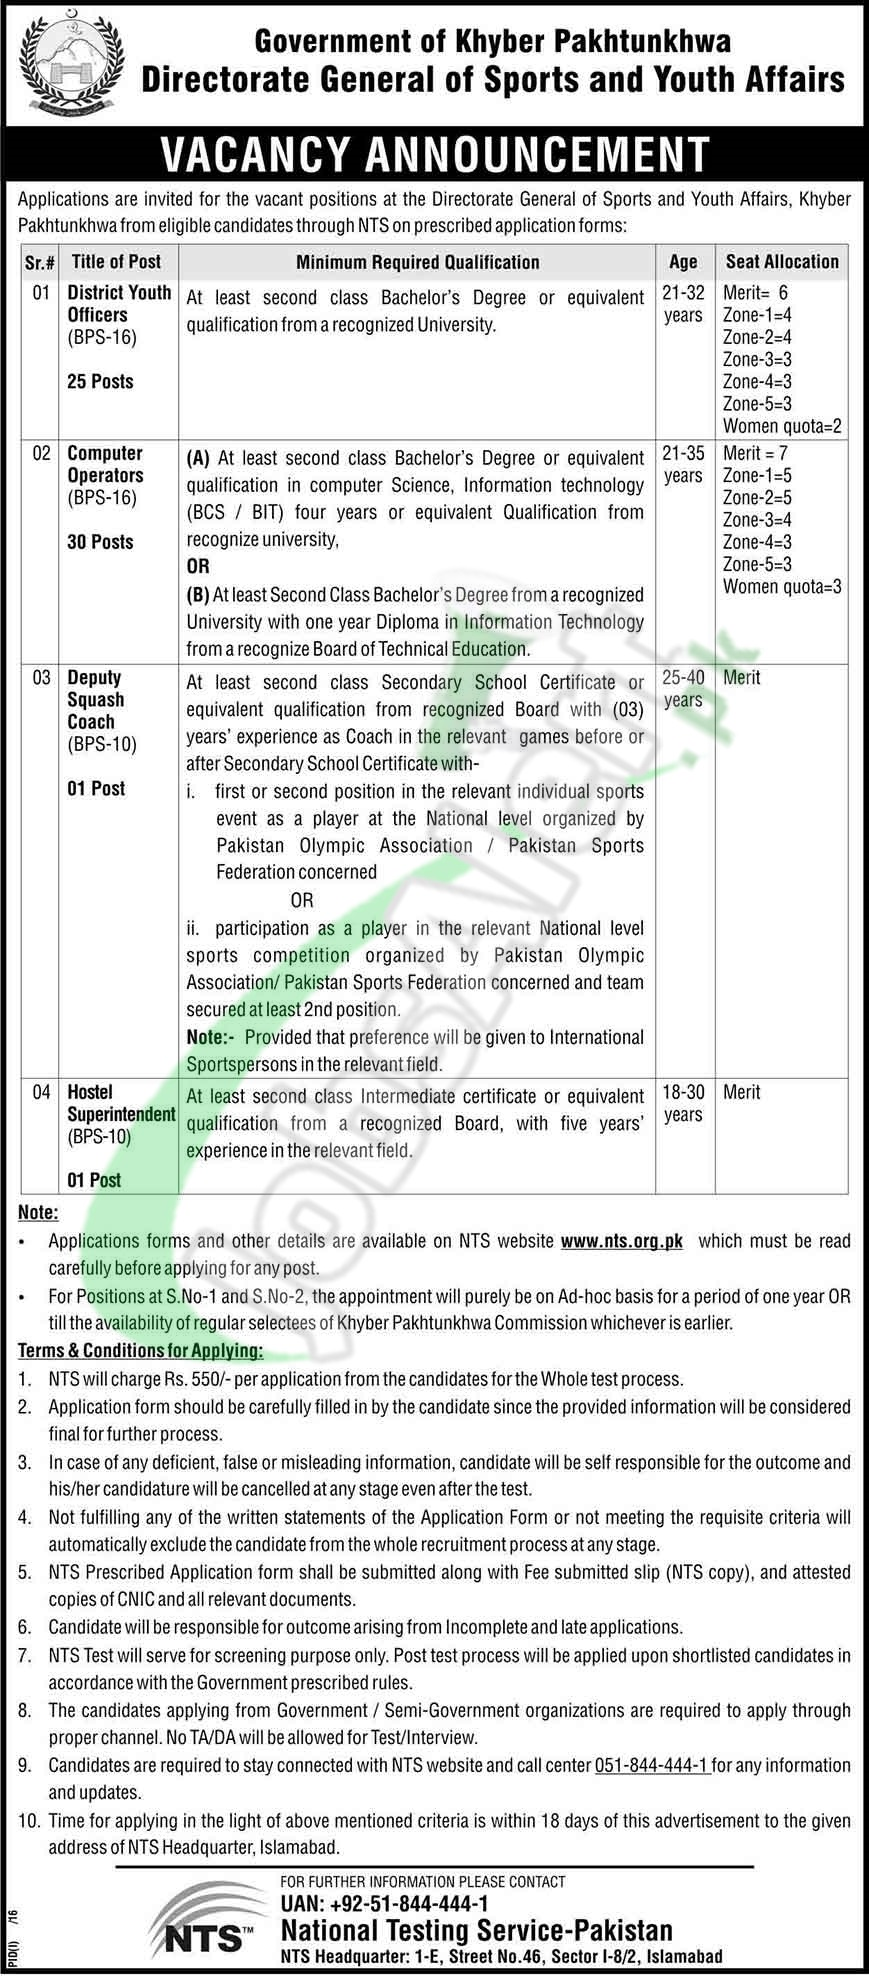 Jobs in KPK Directorate General of Sports and Youth Affairs